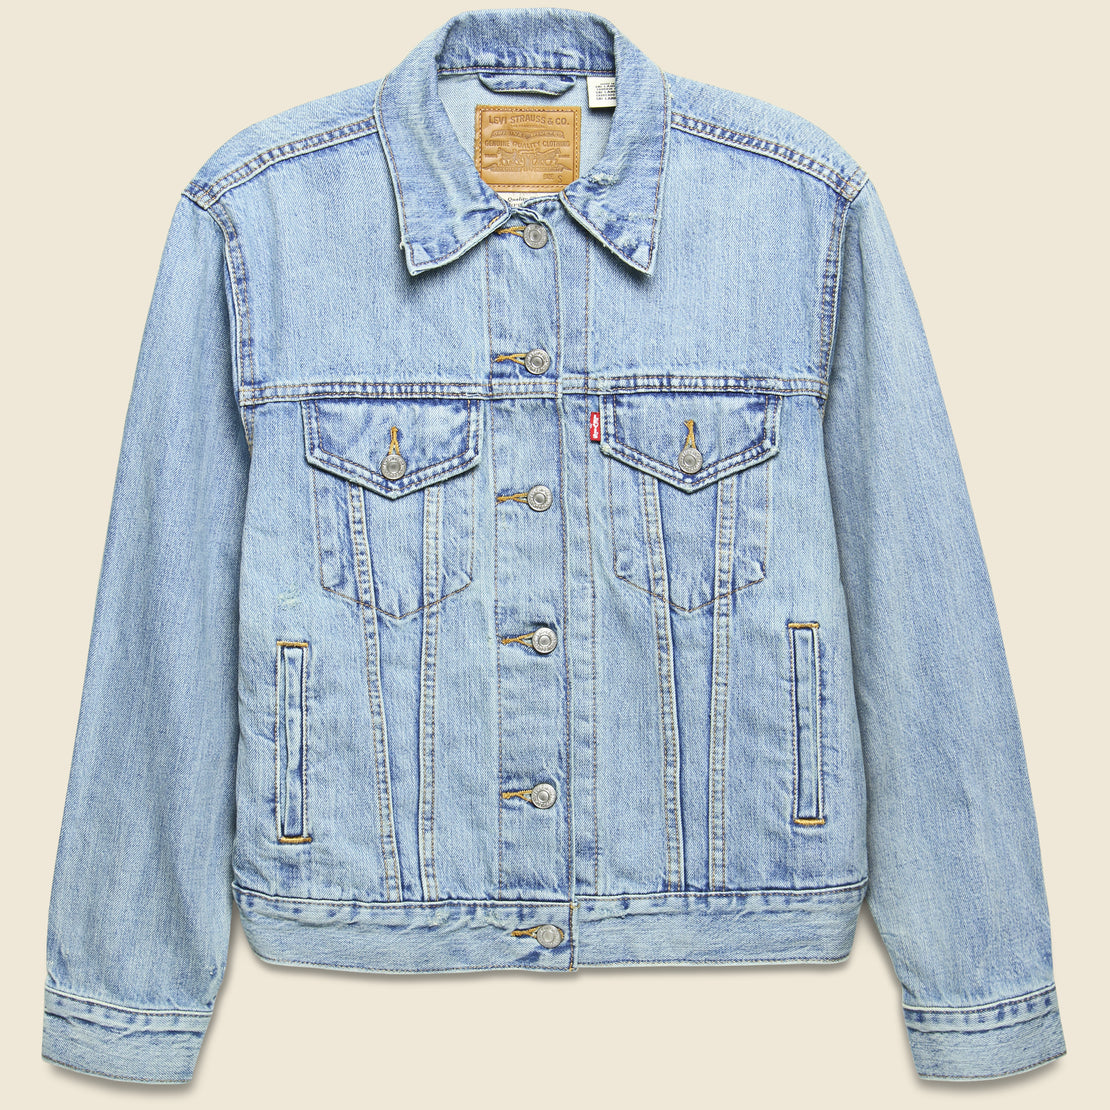 Levis Premium Ex-Boyfriend Trucker Jacket - Dream of Life